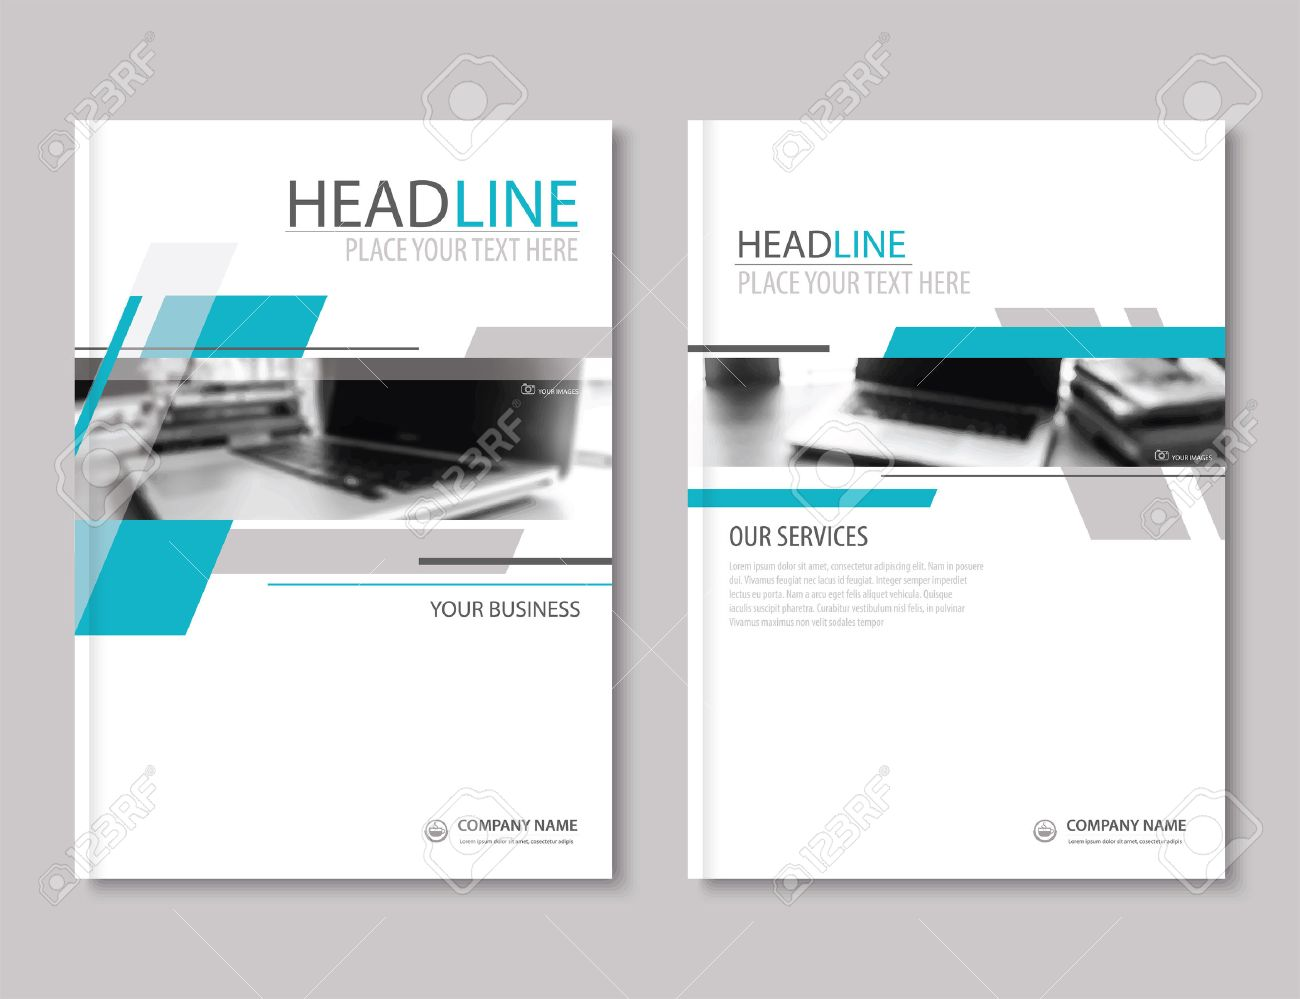 Annual Report Brochure Flyer Design Template. Company Profile ...